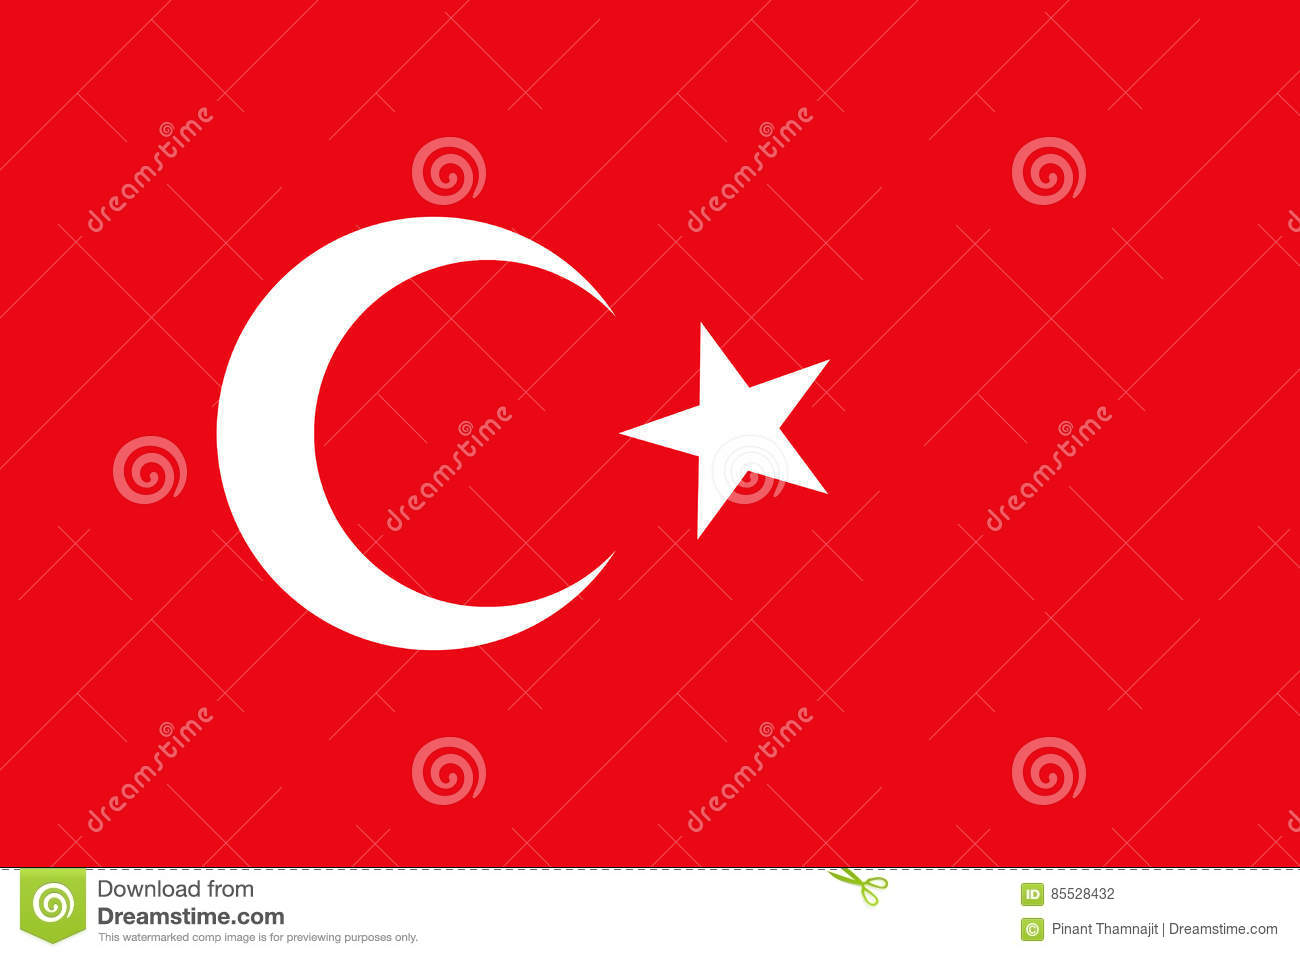 Turkey flag for graphic.